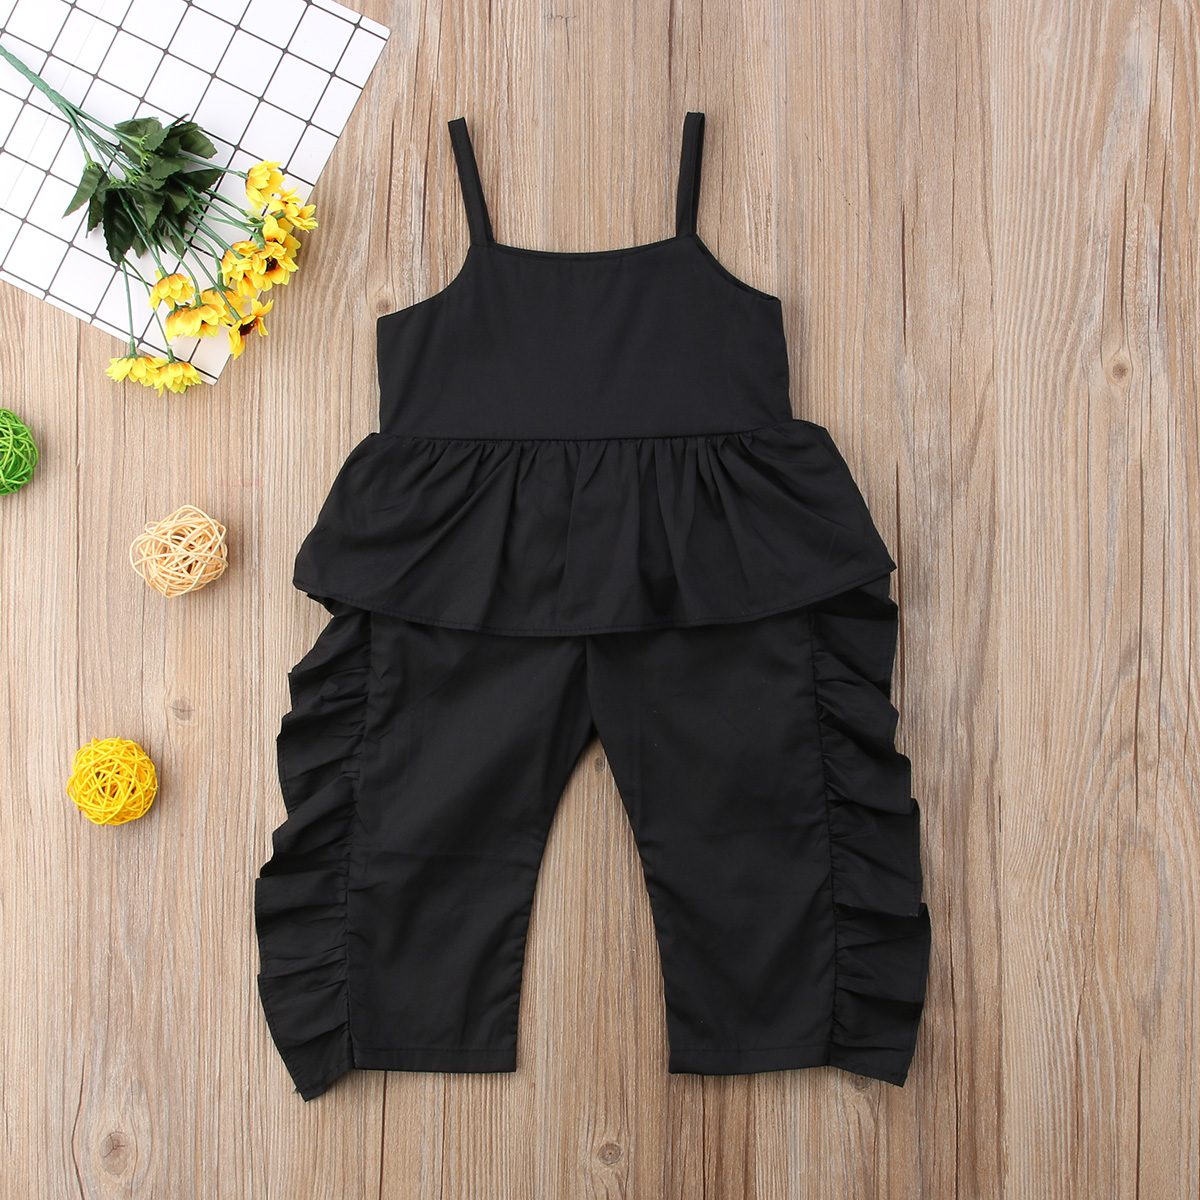 88d7aa96f1 2018 Toddler Baby Girls Ruffle Strap Romper Black Jumpsuit Overalls  Leggings Outfit Fashion Summer Clothes-in Rompers from Mother   Kids on  Aliexpress.com ...